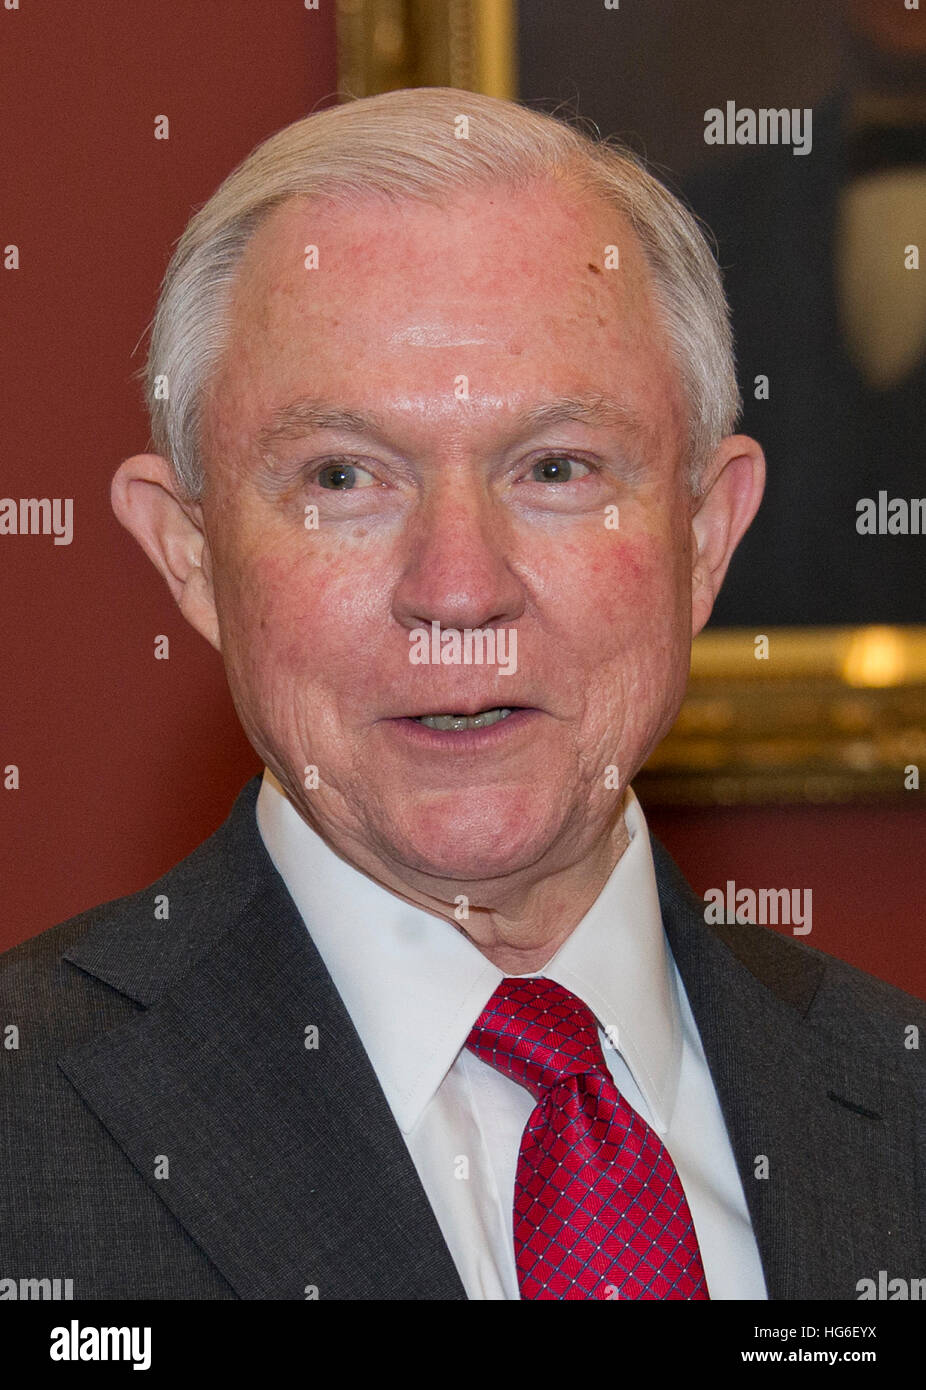 attorney general of the united states